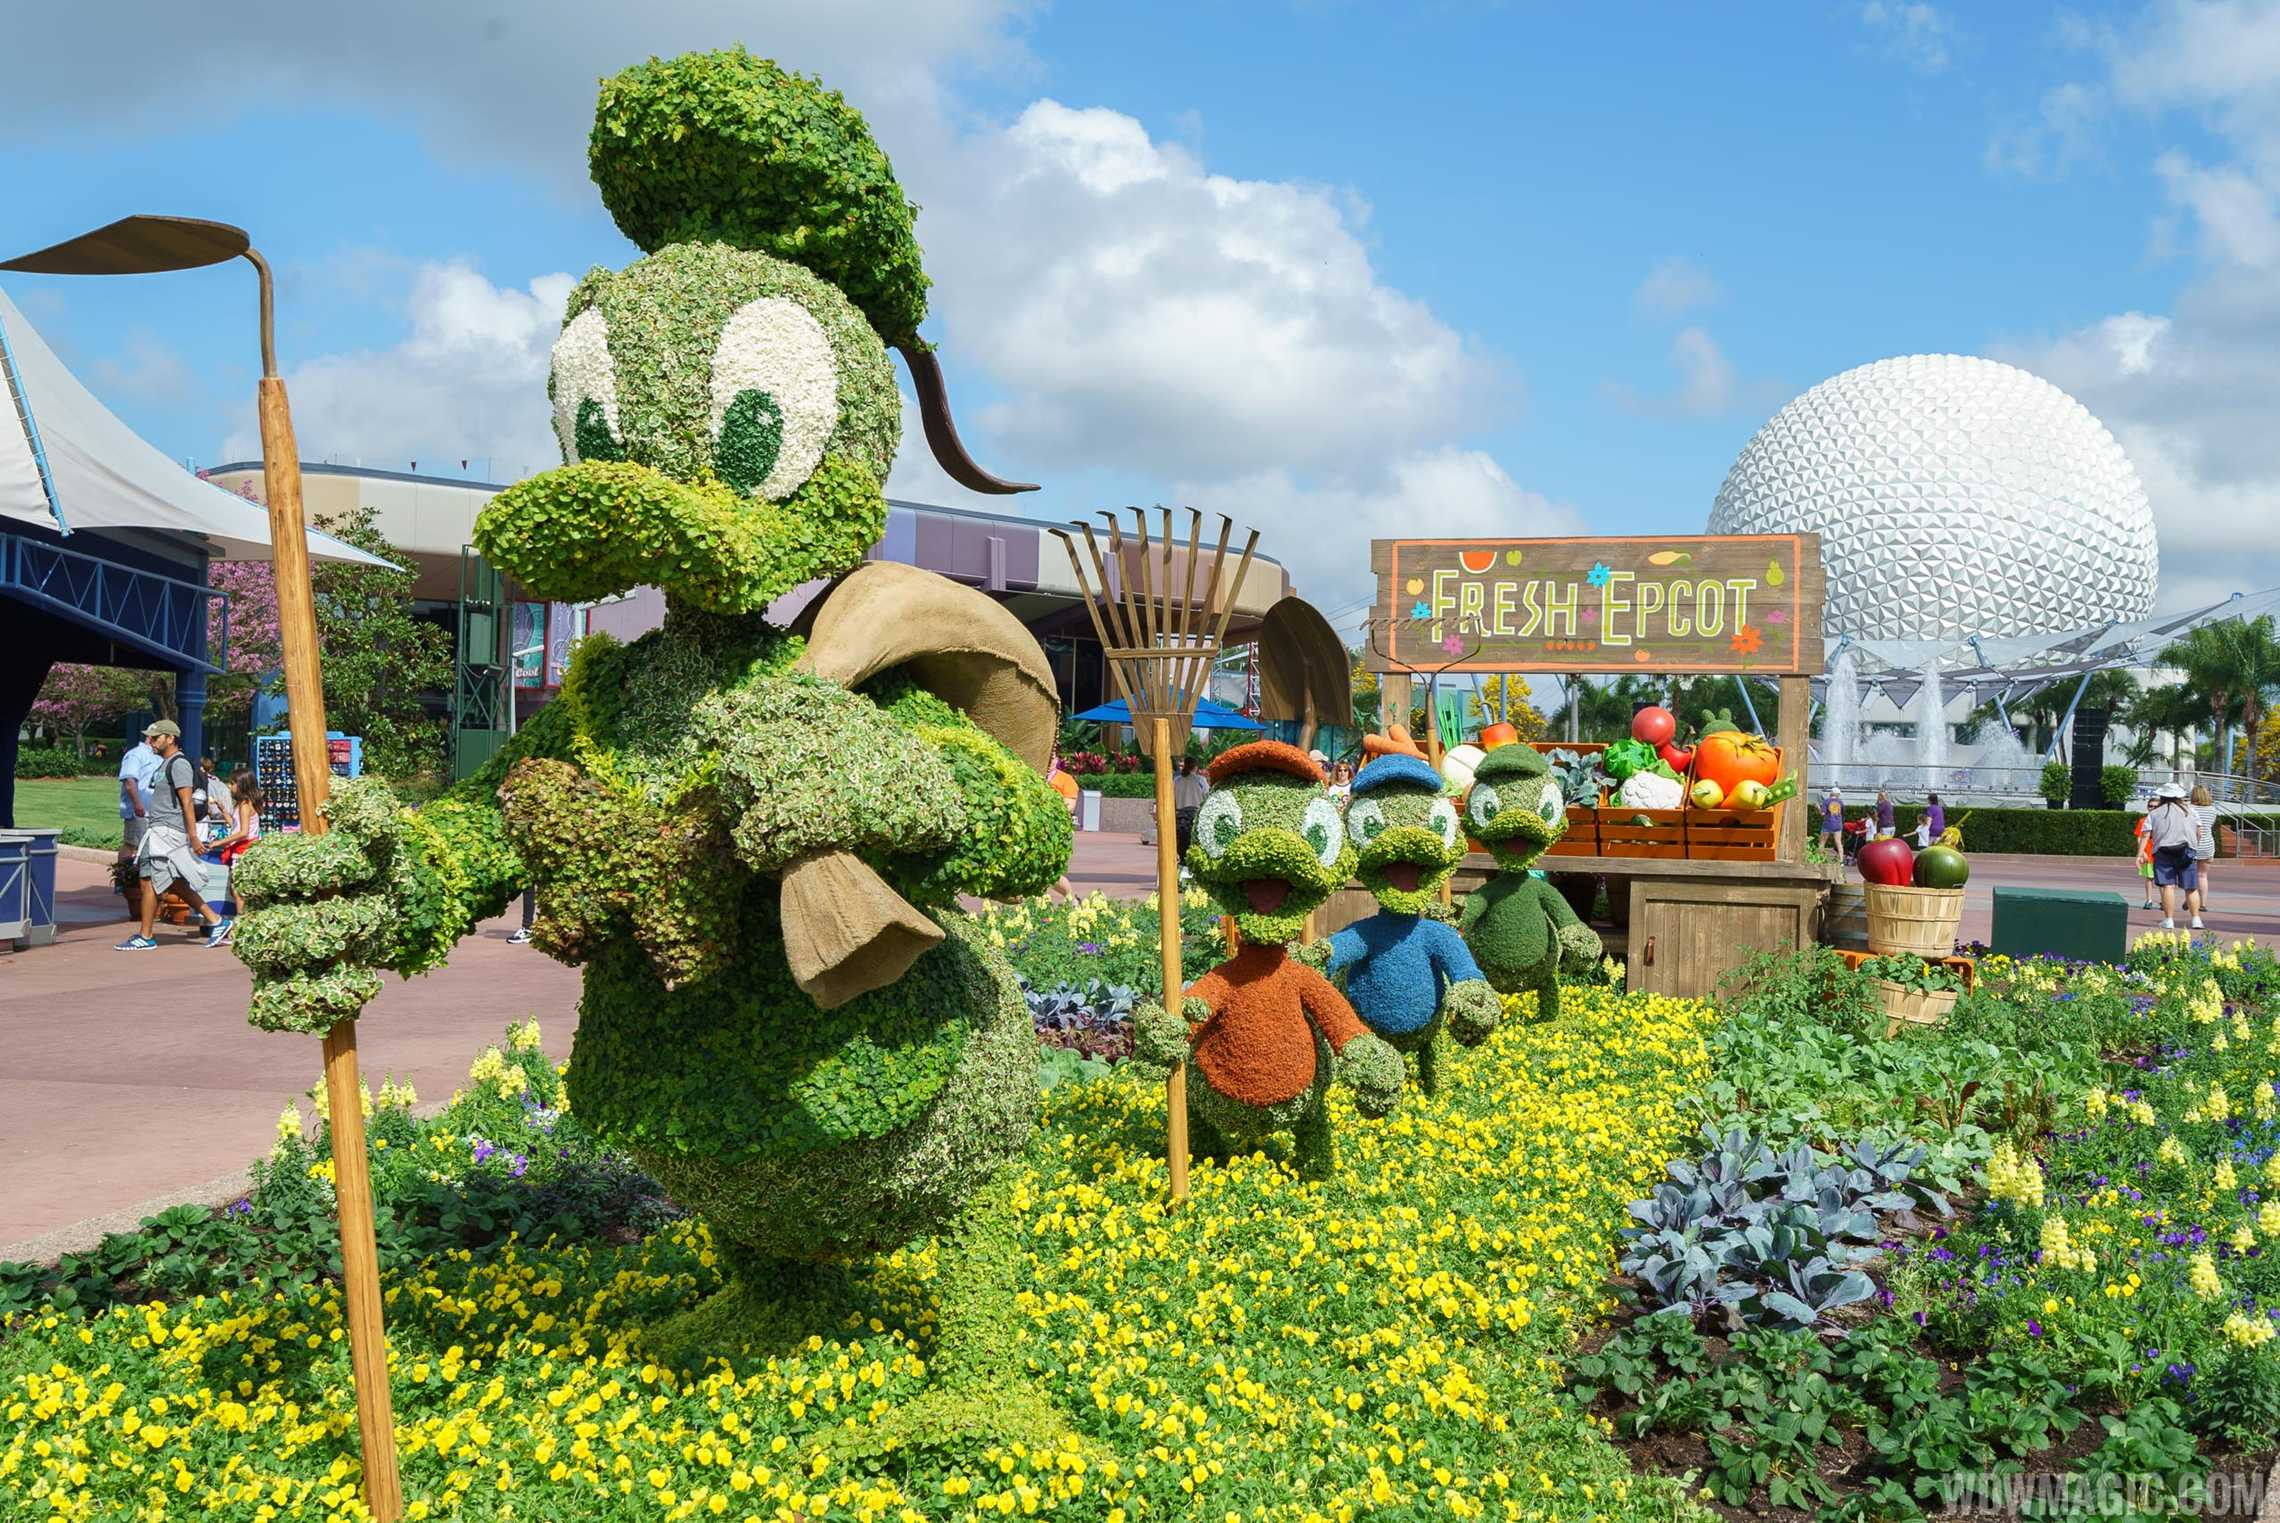 2017 Flower and Garden Festival - Donald Duck, Huey, Dewy and Louie topiaries